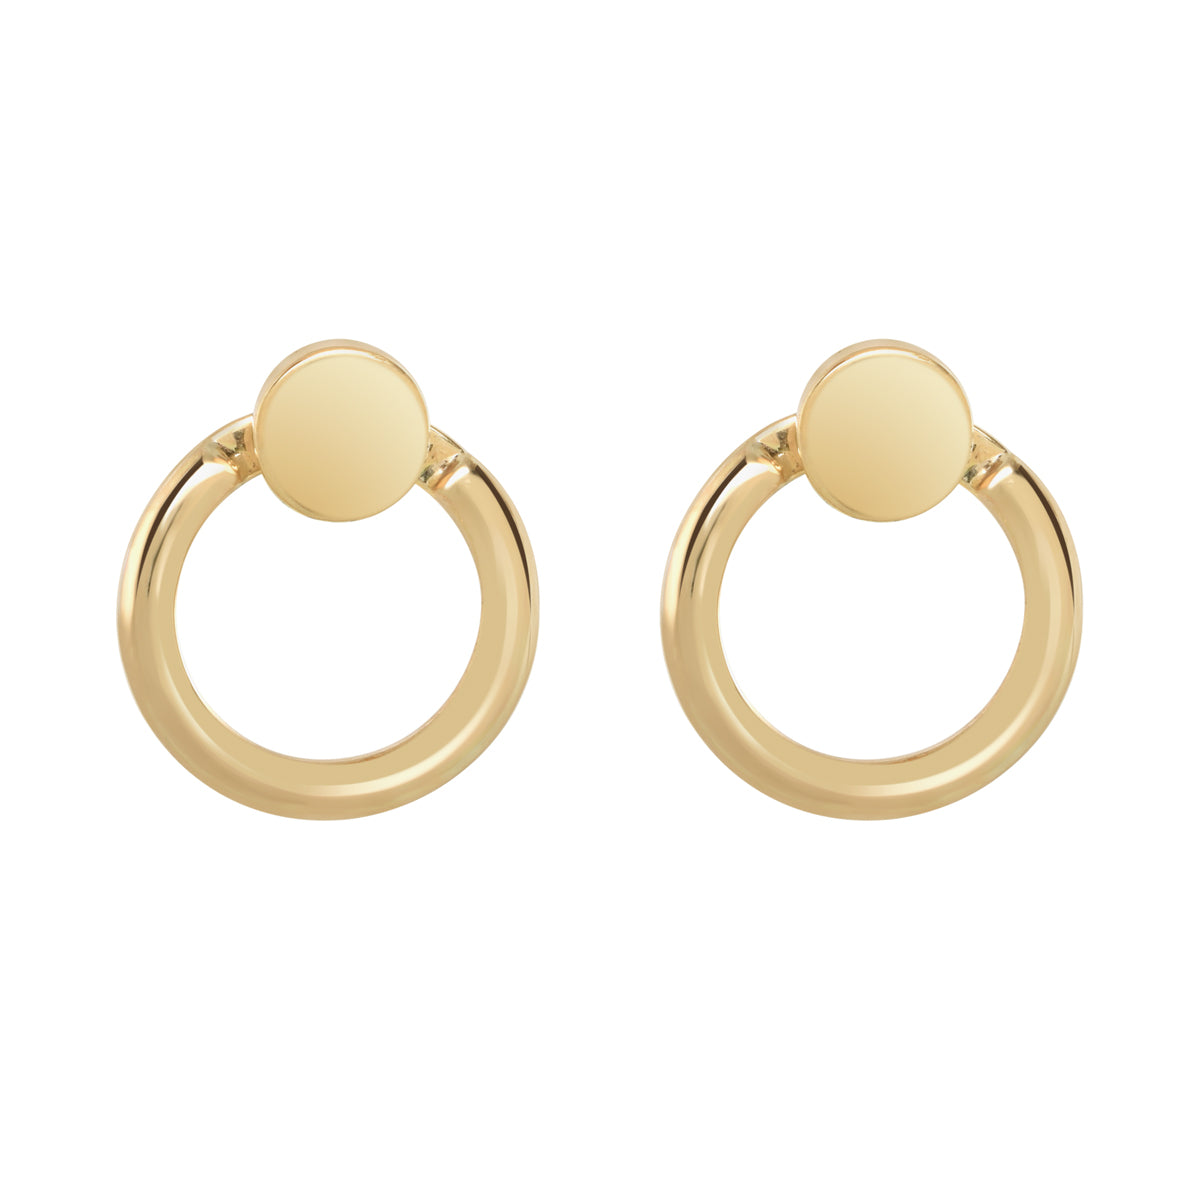 Gold Eclipse Earrings - René Habie